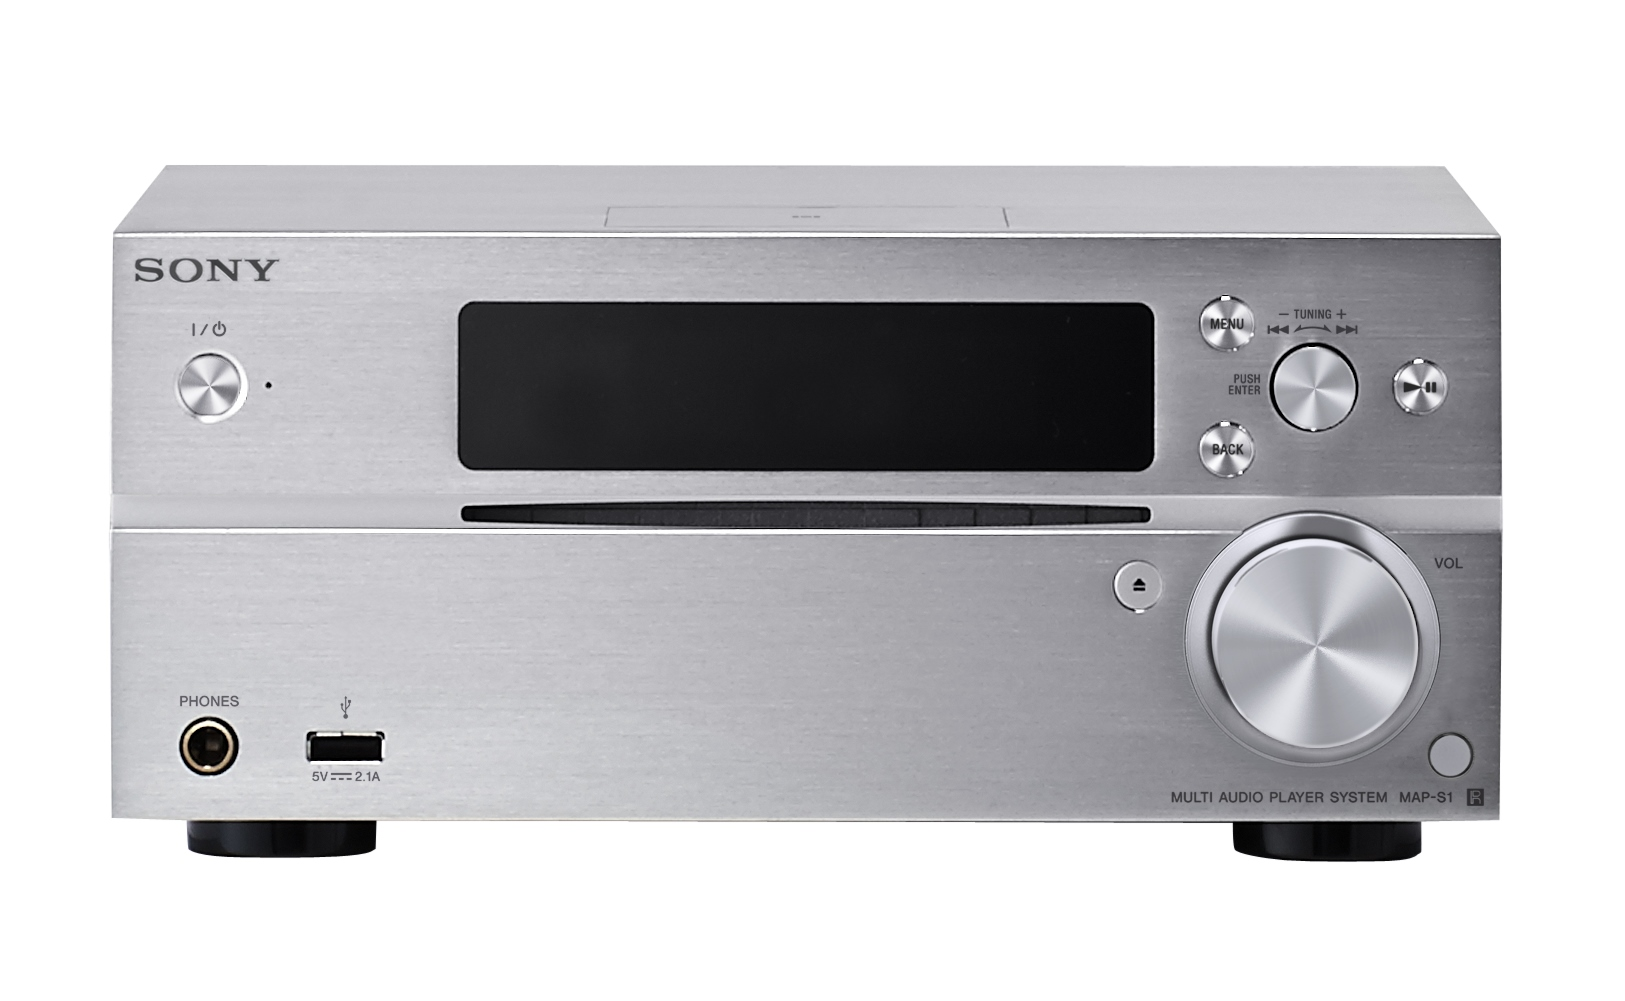 Sony MAP-S1 CD receiver courtesy of Sony